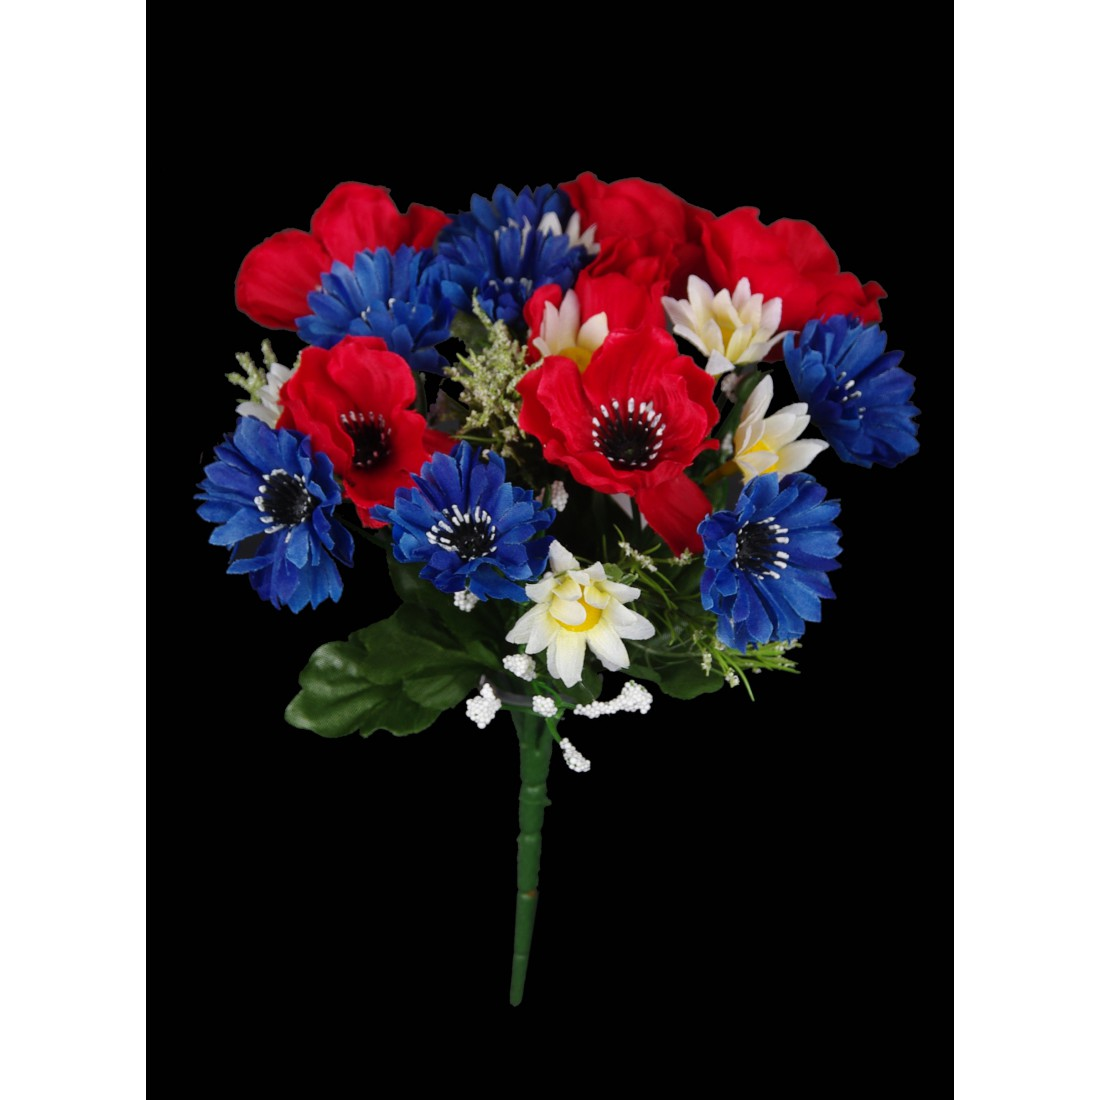 bouquet artificiel bleu blanc rouge 22 cm bouquets reflets nature lyon. Black Bedroom Furniture Sets. Home Design Ideas